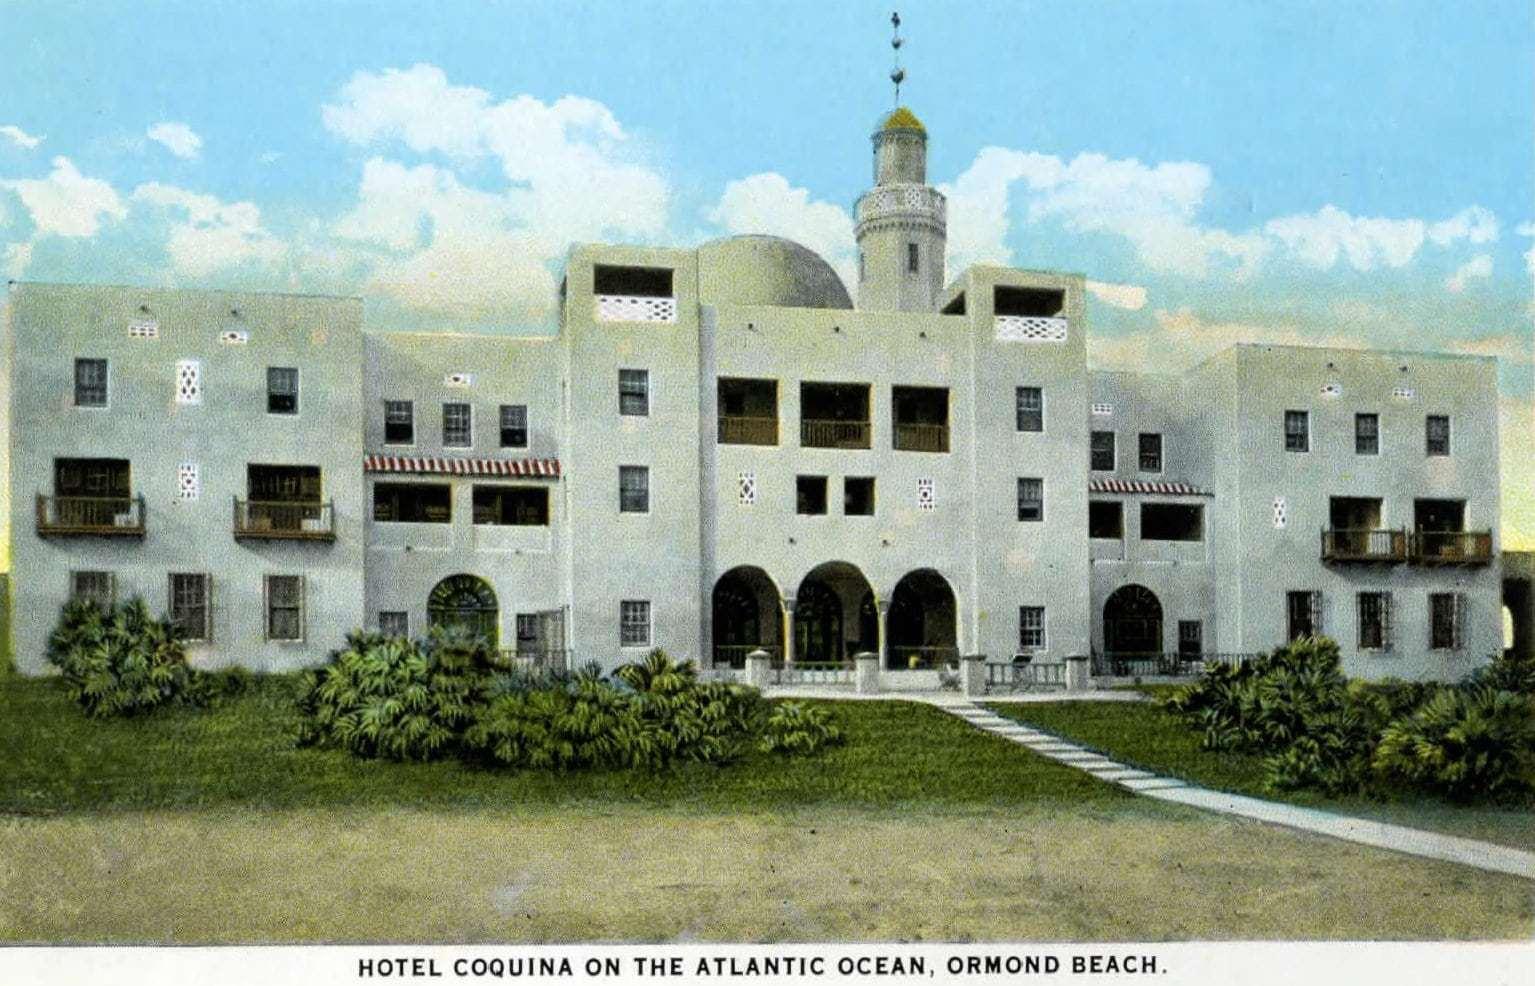 Old Hotel Coquina at Ormond Beach 1917